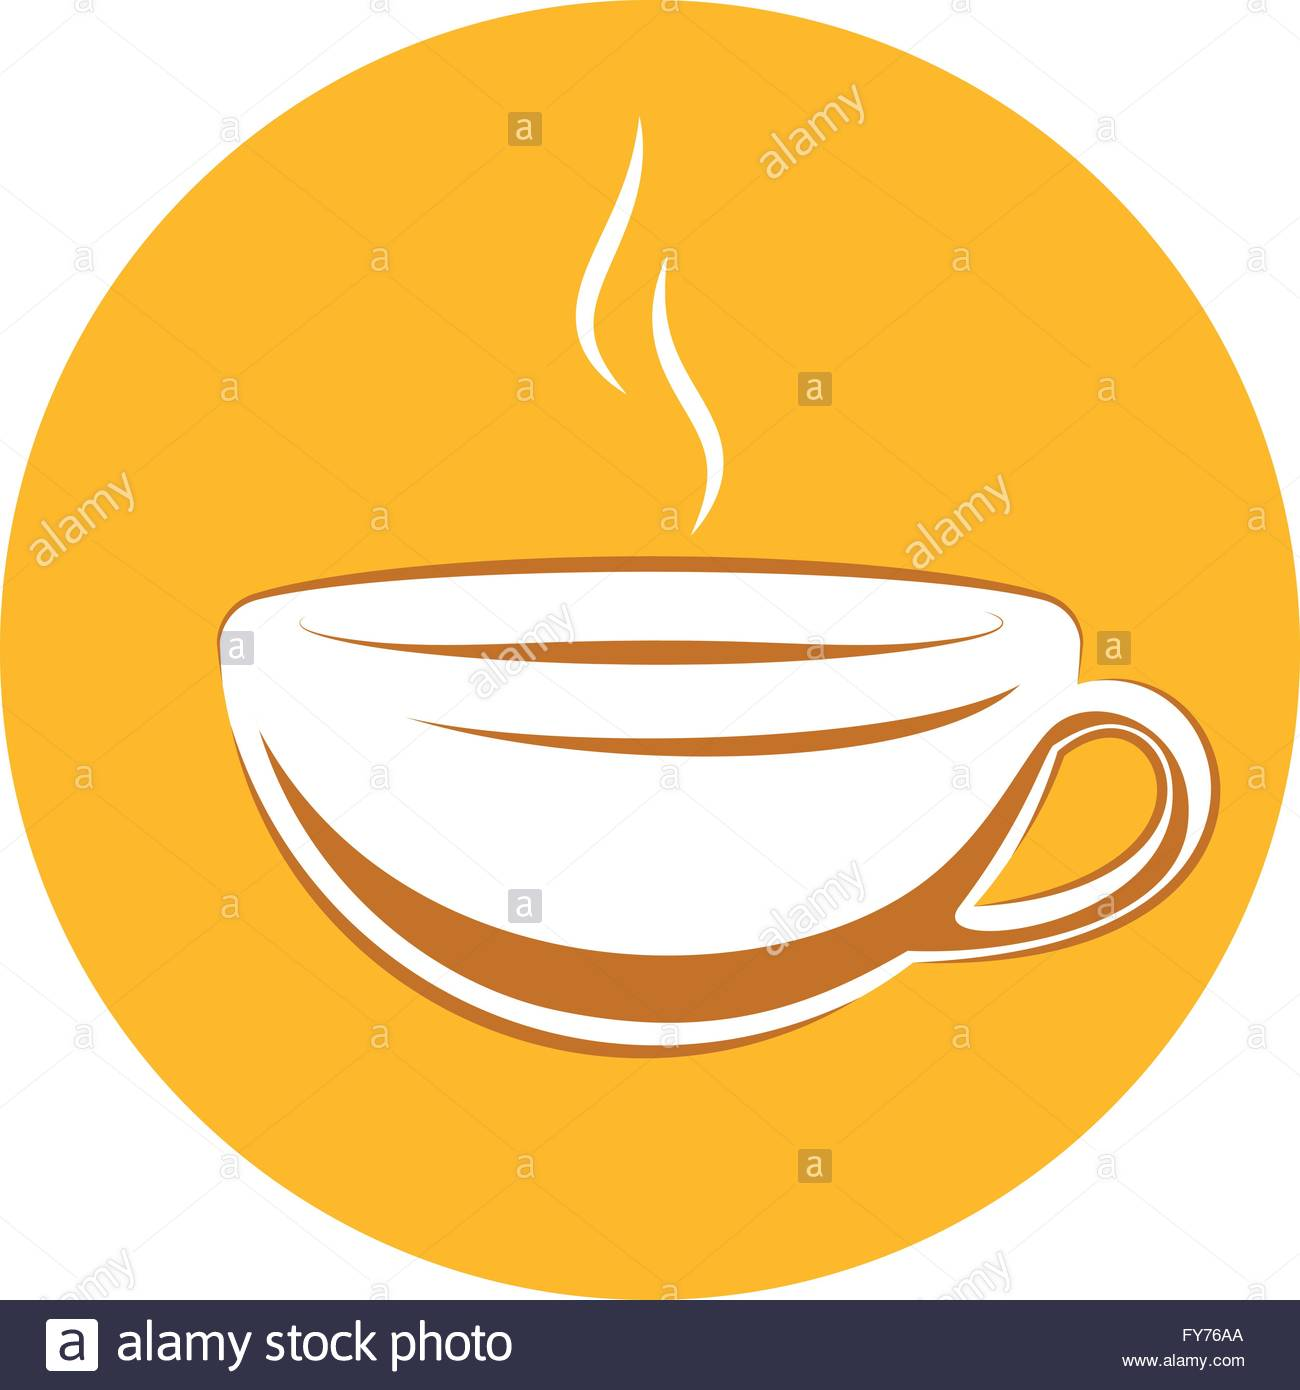 Coffee Cup. Line Drawing Vector Illustration of a Coffee Cup Icon in Brazilian Style - Stock Vector